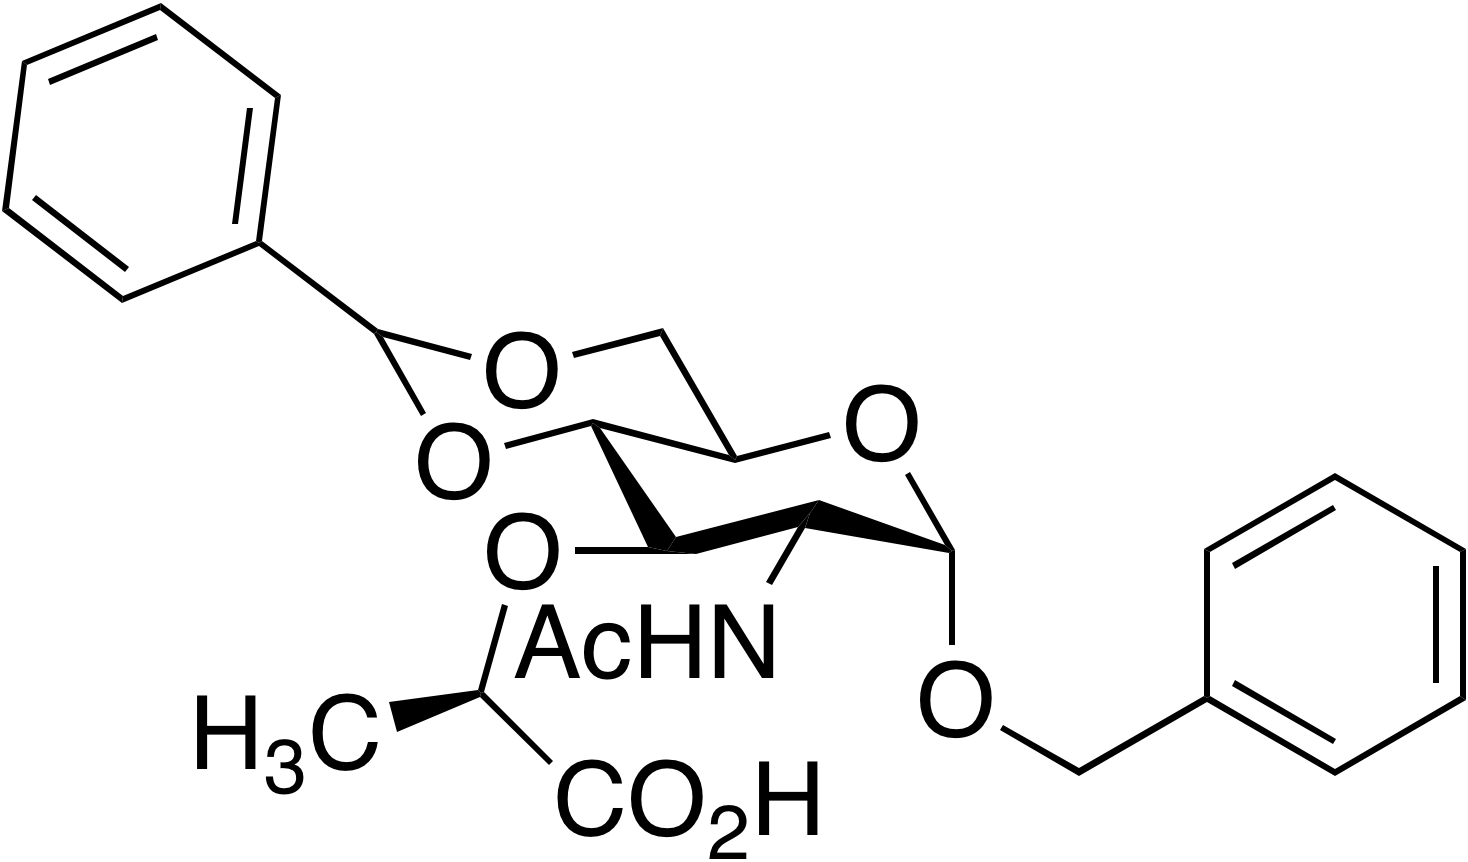 alpha-Benzyl-4,6-O-benzylidene muramic acid